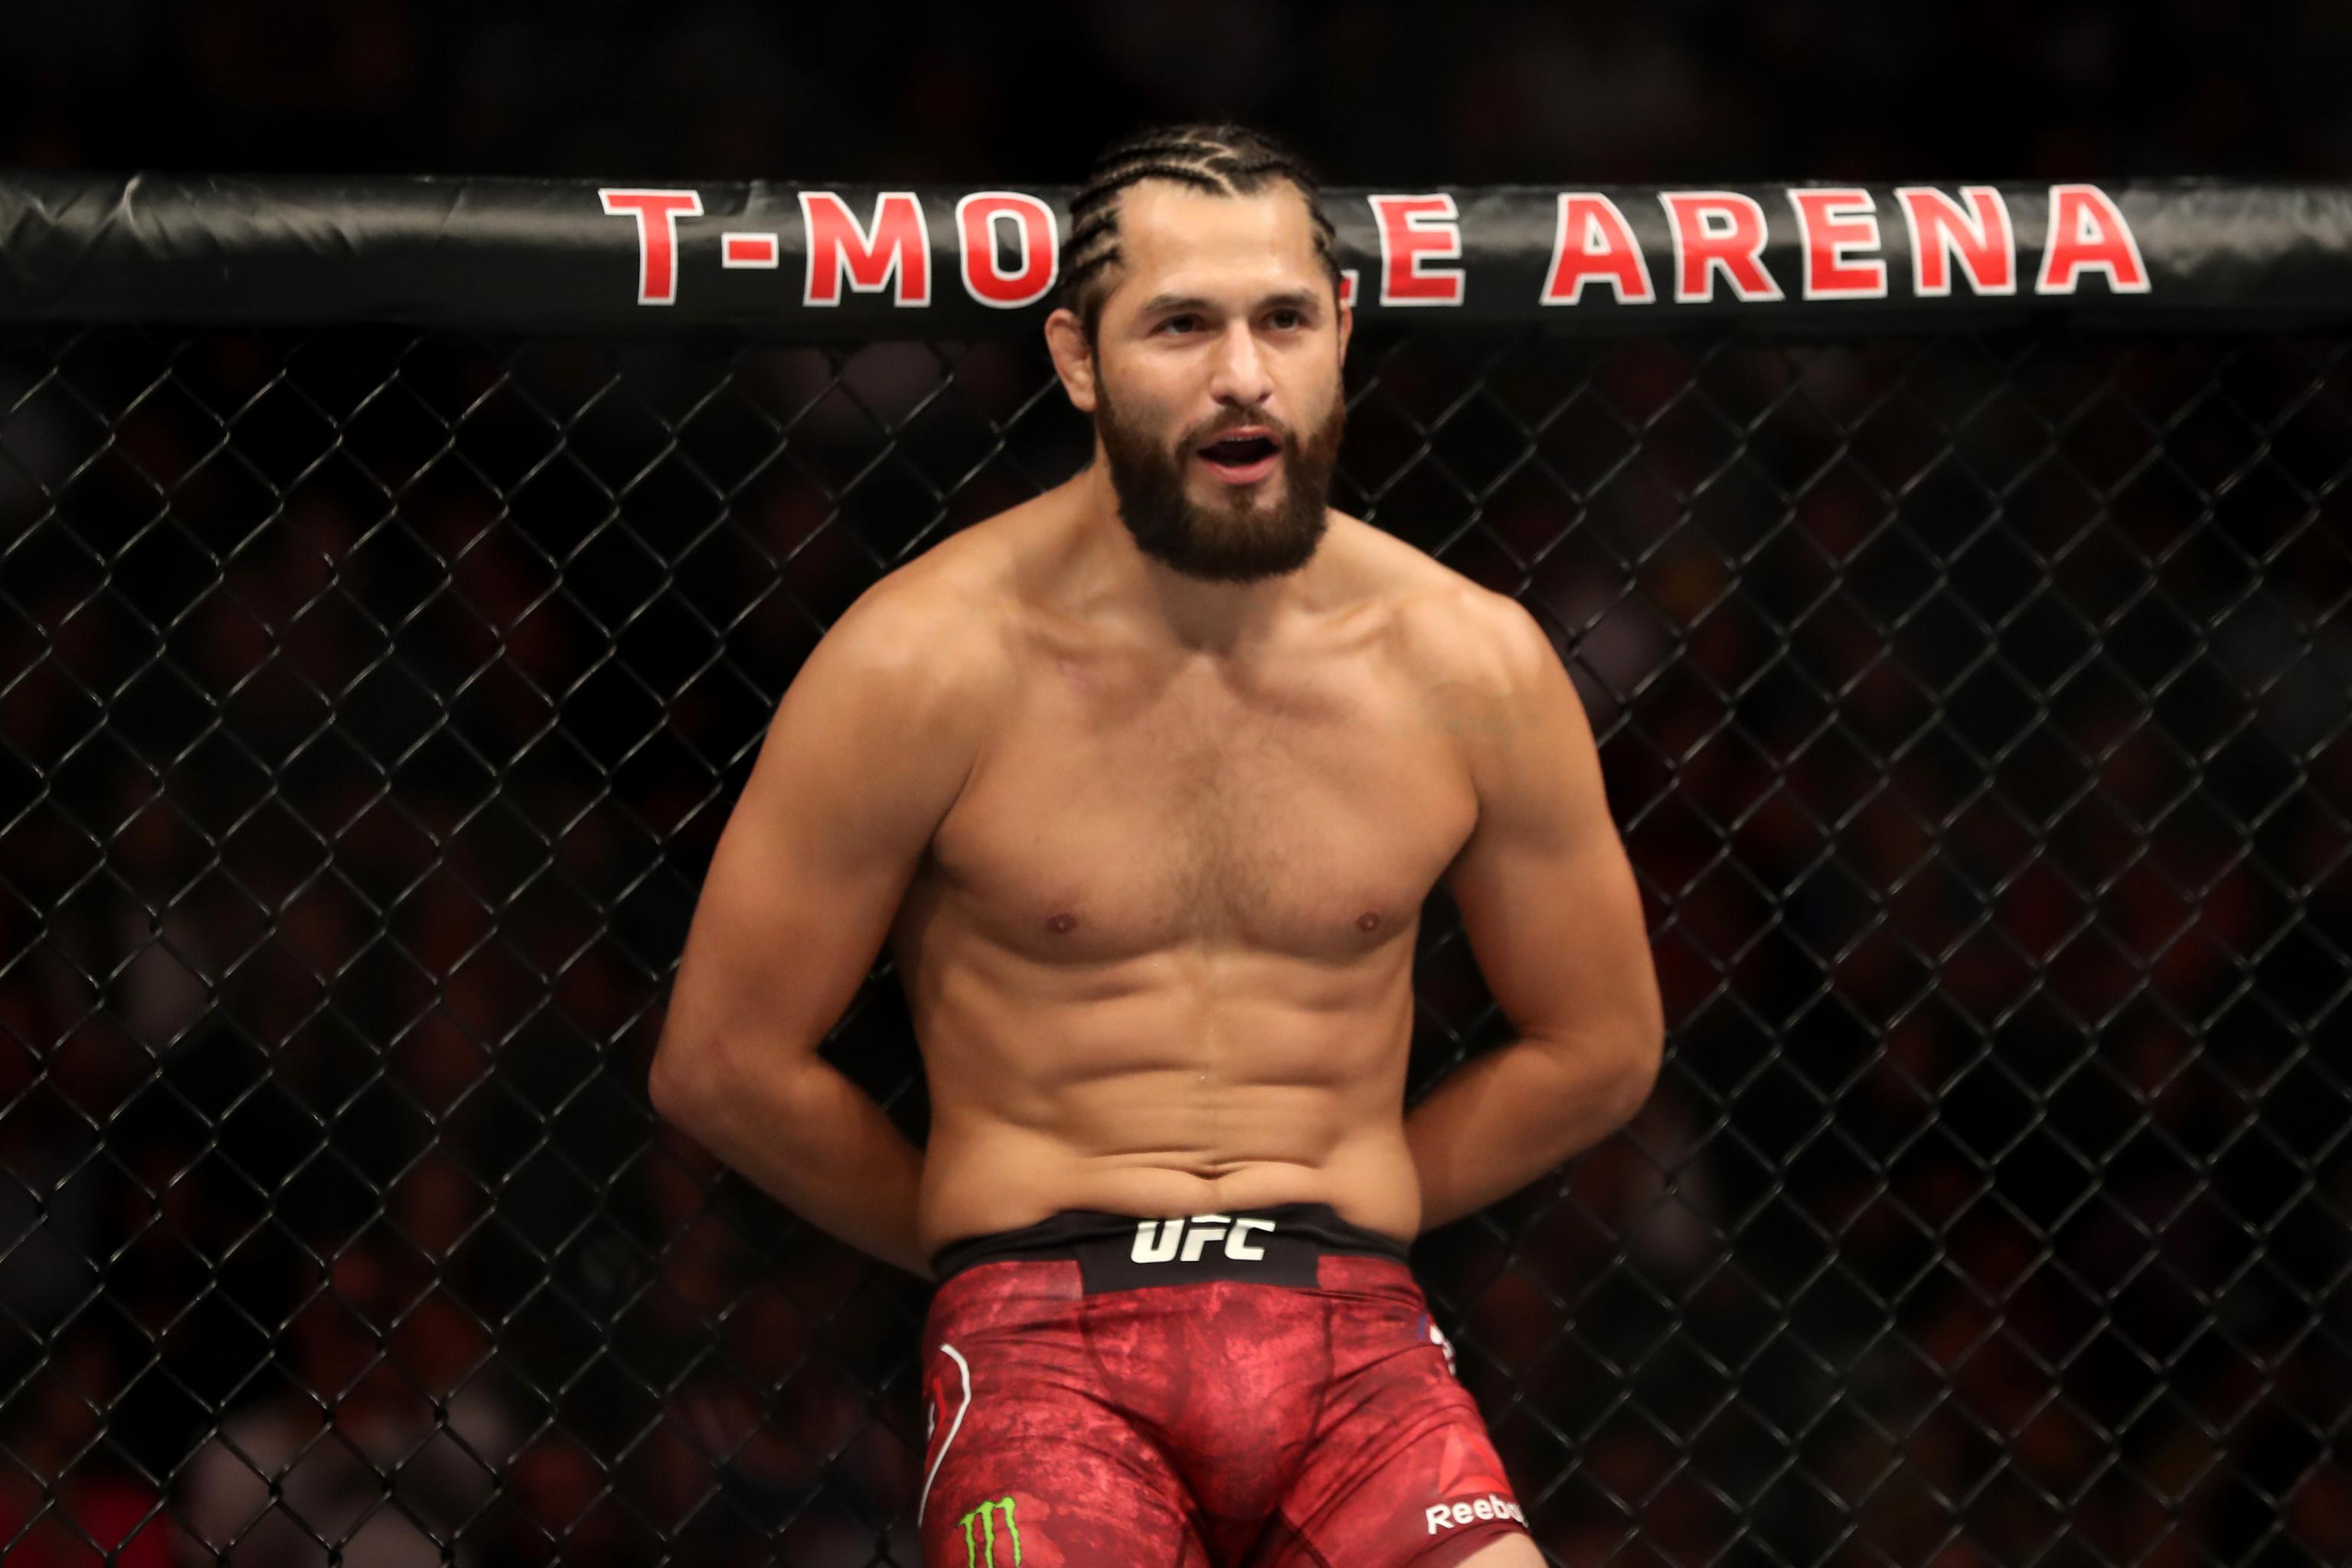 Jorge Masvidal: 'I Don't Want to Go to Jail for Killing' Conor McGregor in UFC | Bleacher Report | Latest News, Videos and Highlights